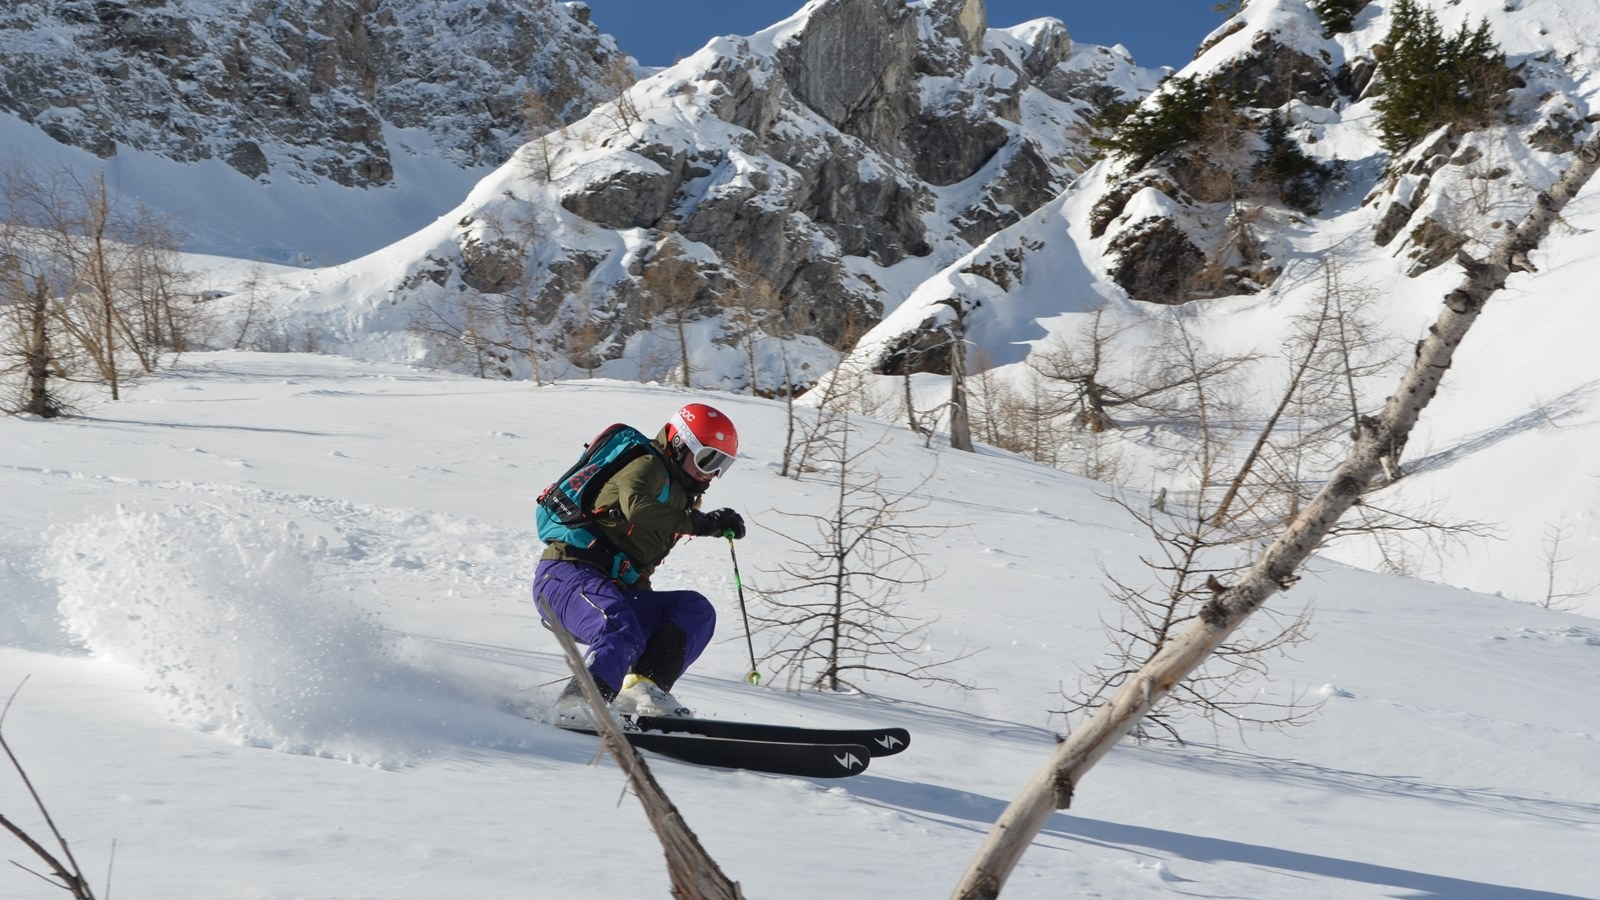 Offpiste skiing with SKi Academy in Andermatt; best ski school in Andermatt; Skiarena Andermatt-Sedrun-Disentis; powder; guiding; mountain guides; ultimate adventure; tree-skiing; Explore Airolo; powder pig;